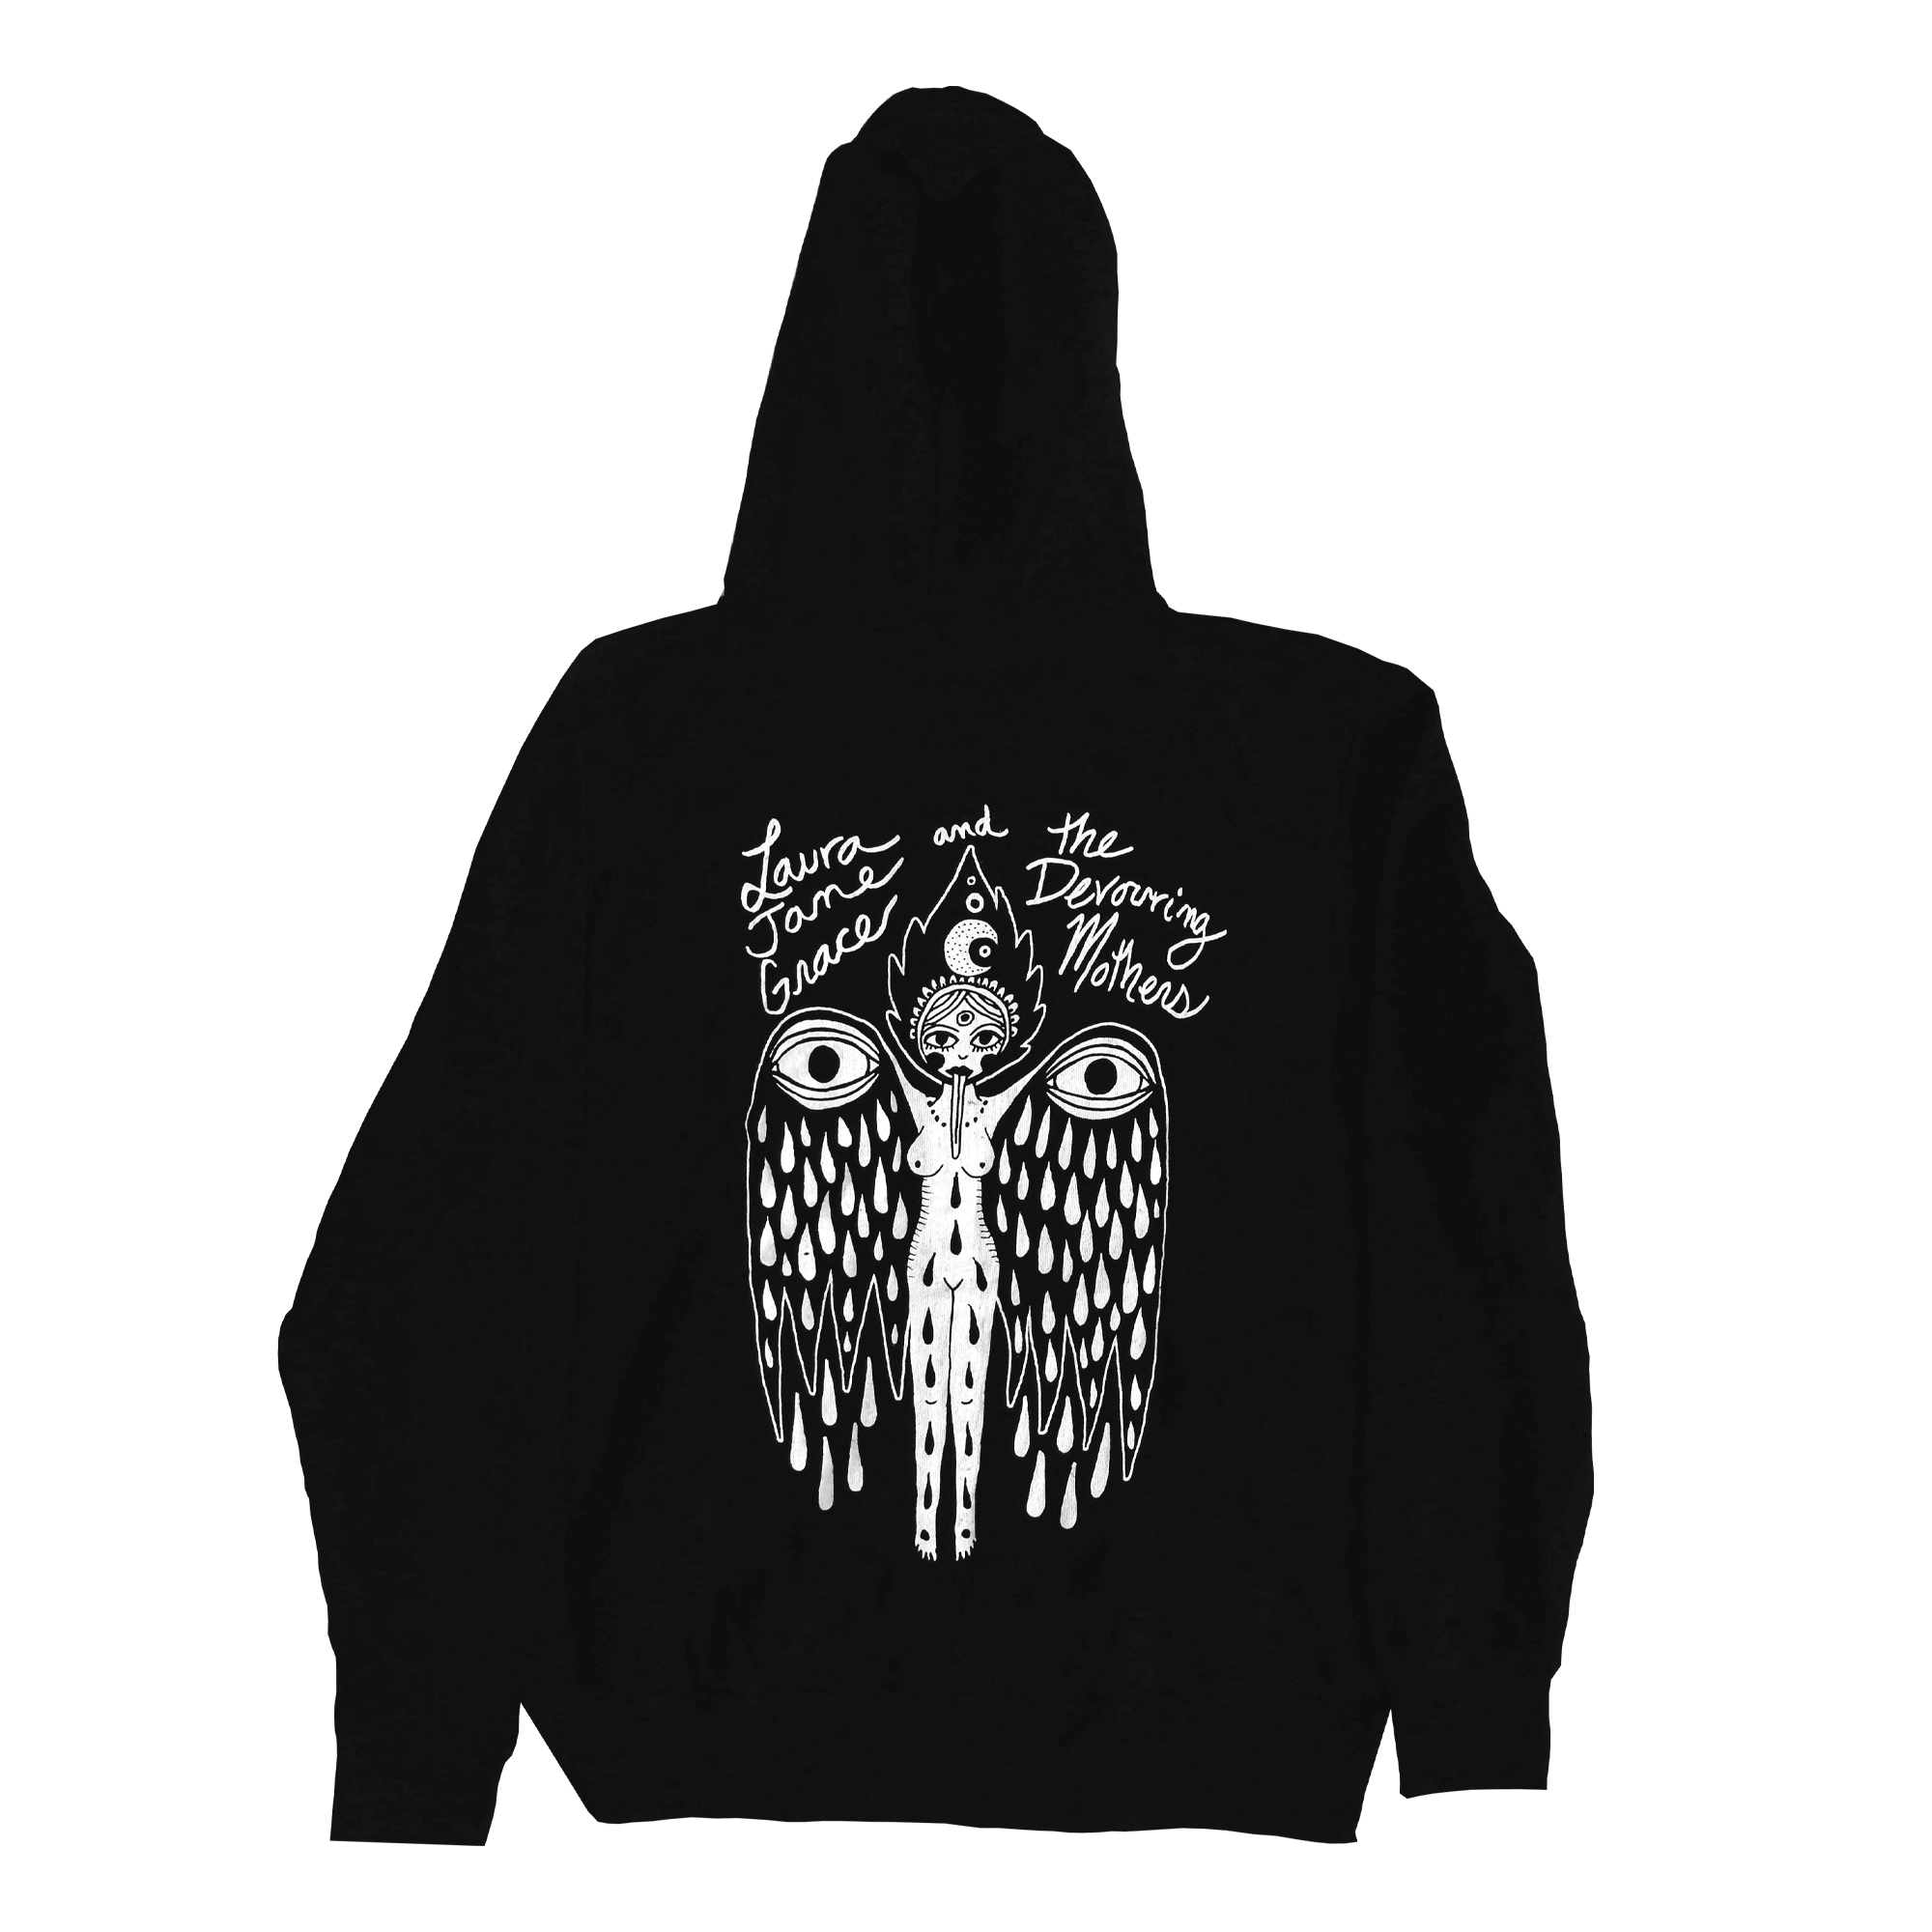 Laura Jane Grace and the Devouring Mothers - Deer Jerk Zip-Up Hoodie